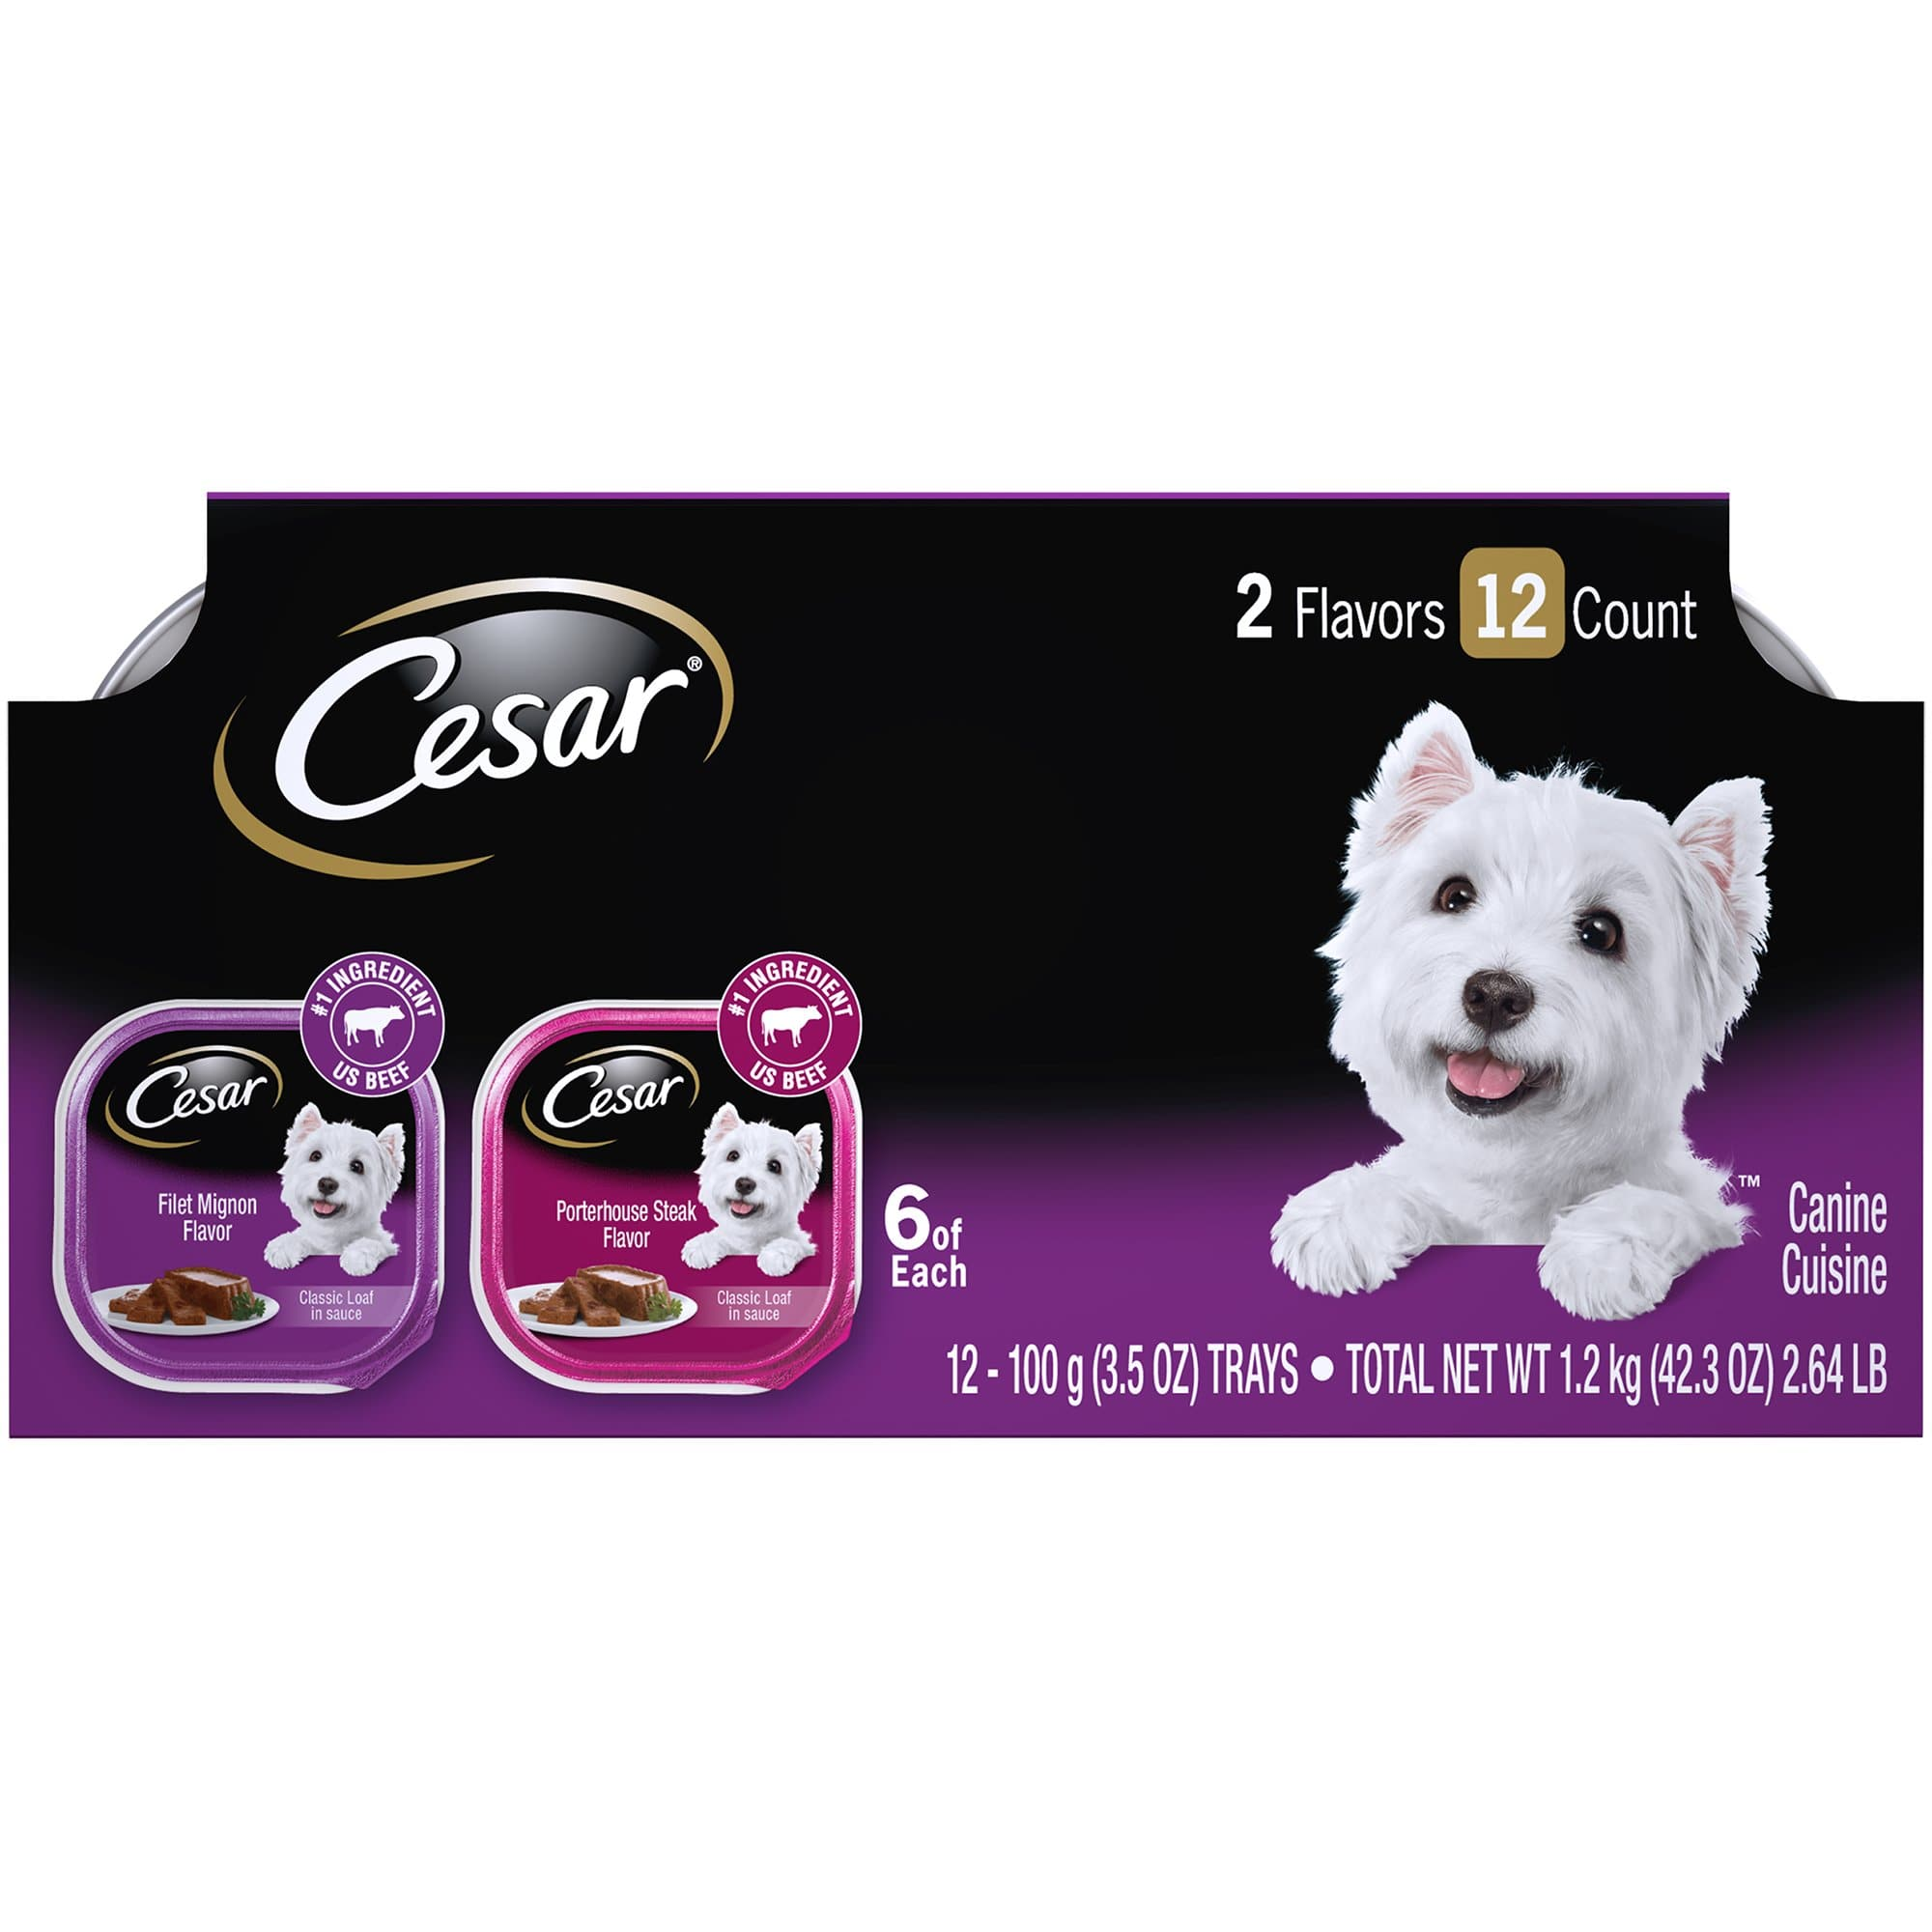 (12 Pack) CESAR Soft Wet Dog Food Classic Loaf in Sauce Filet Mignon and Porterhouse Steak Flavors Variety Pack, 3.5 oz. Easy Peel Trays - FLJ CORPORATIONS